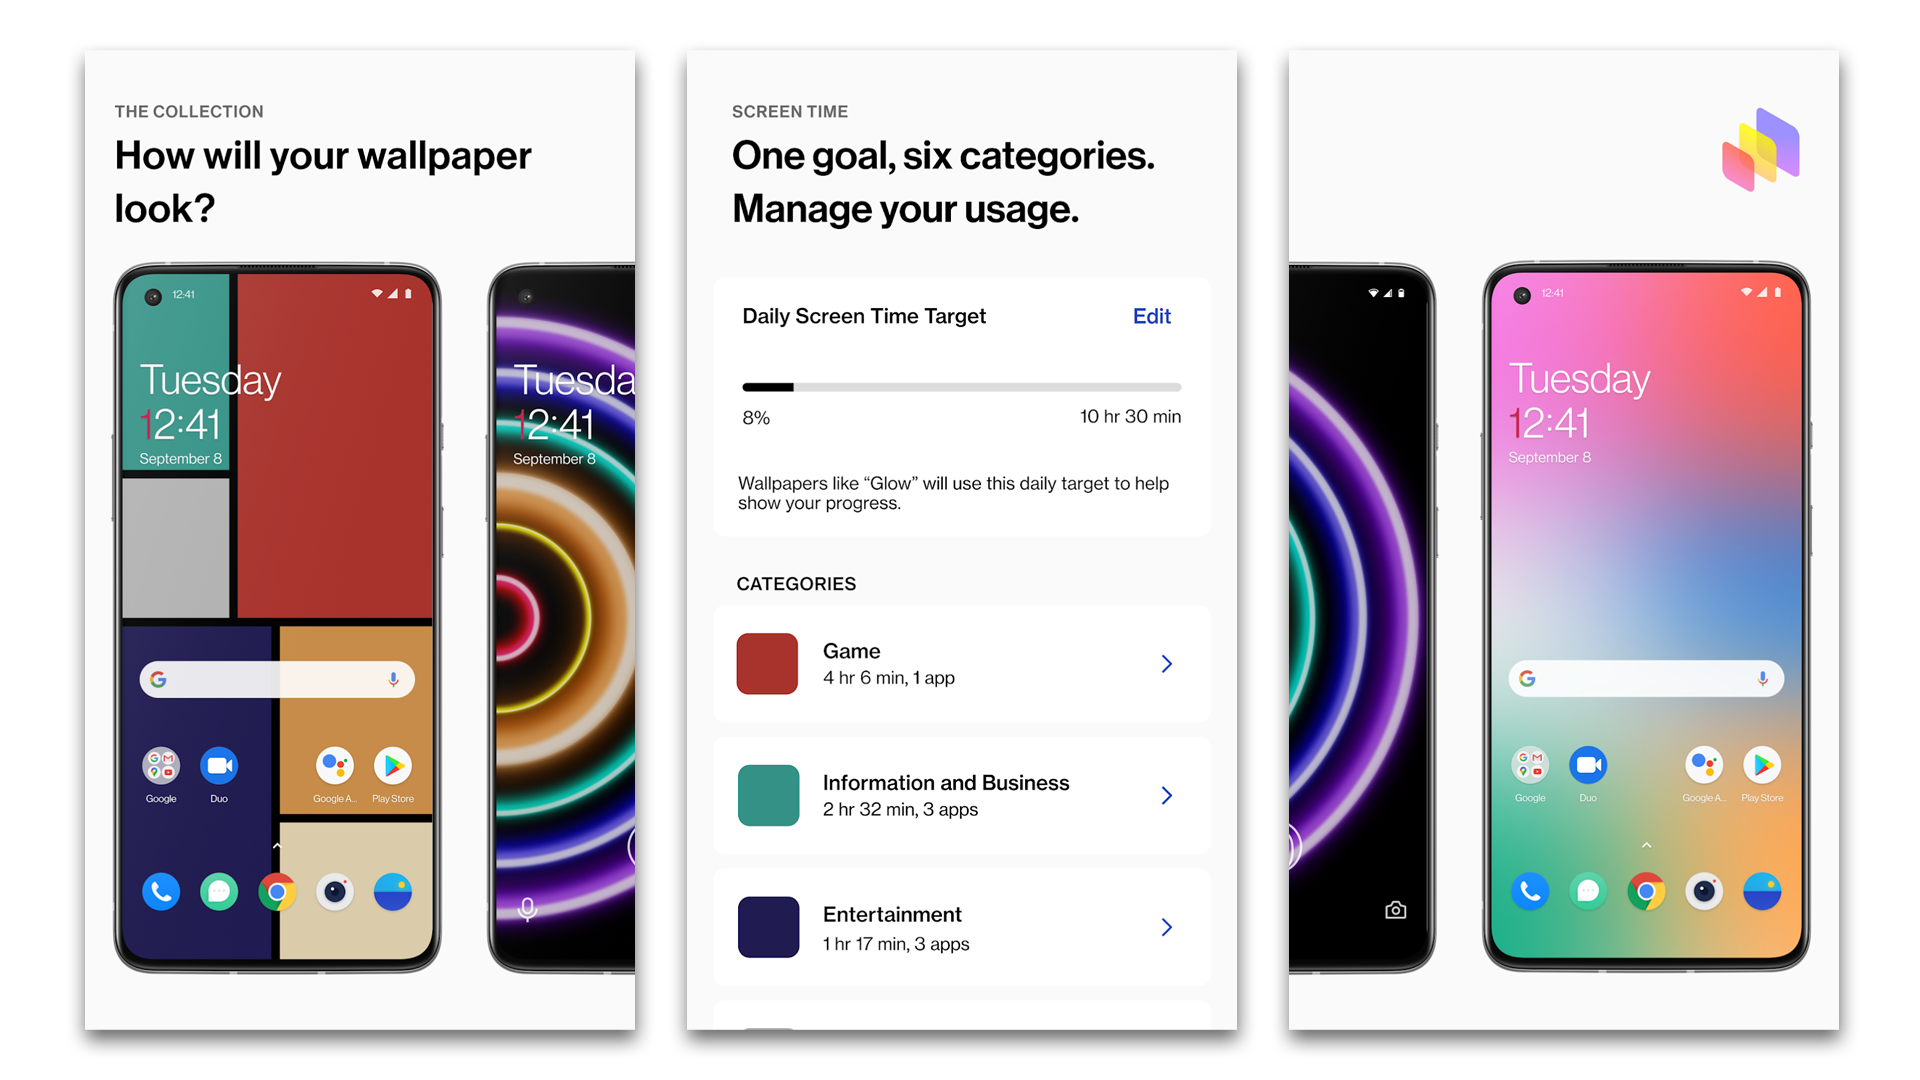 OnePlus WellPaper settings page.